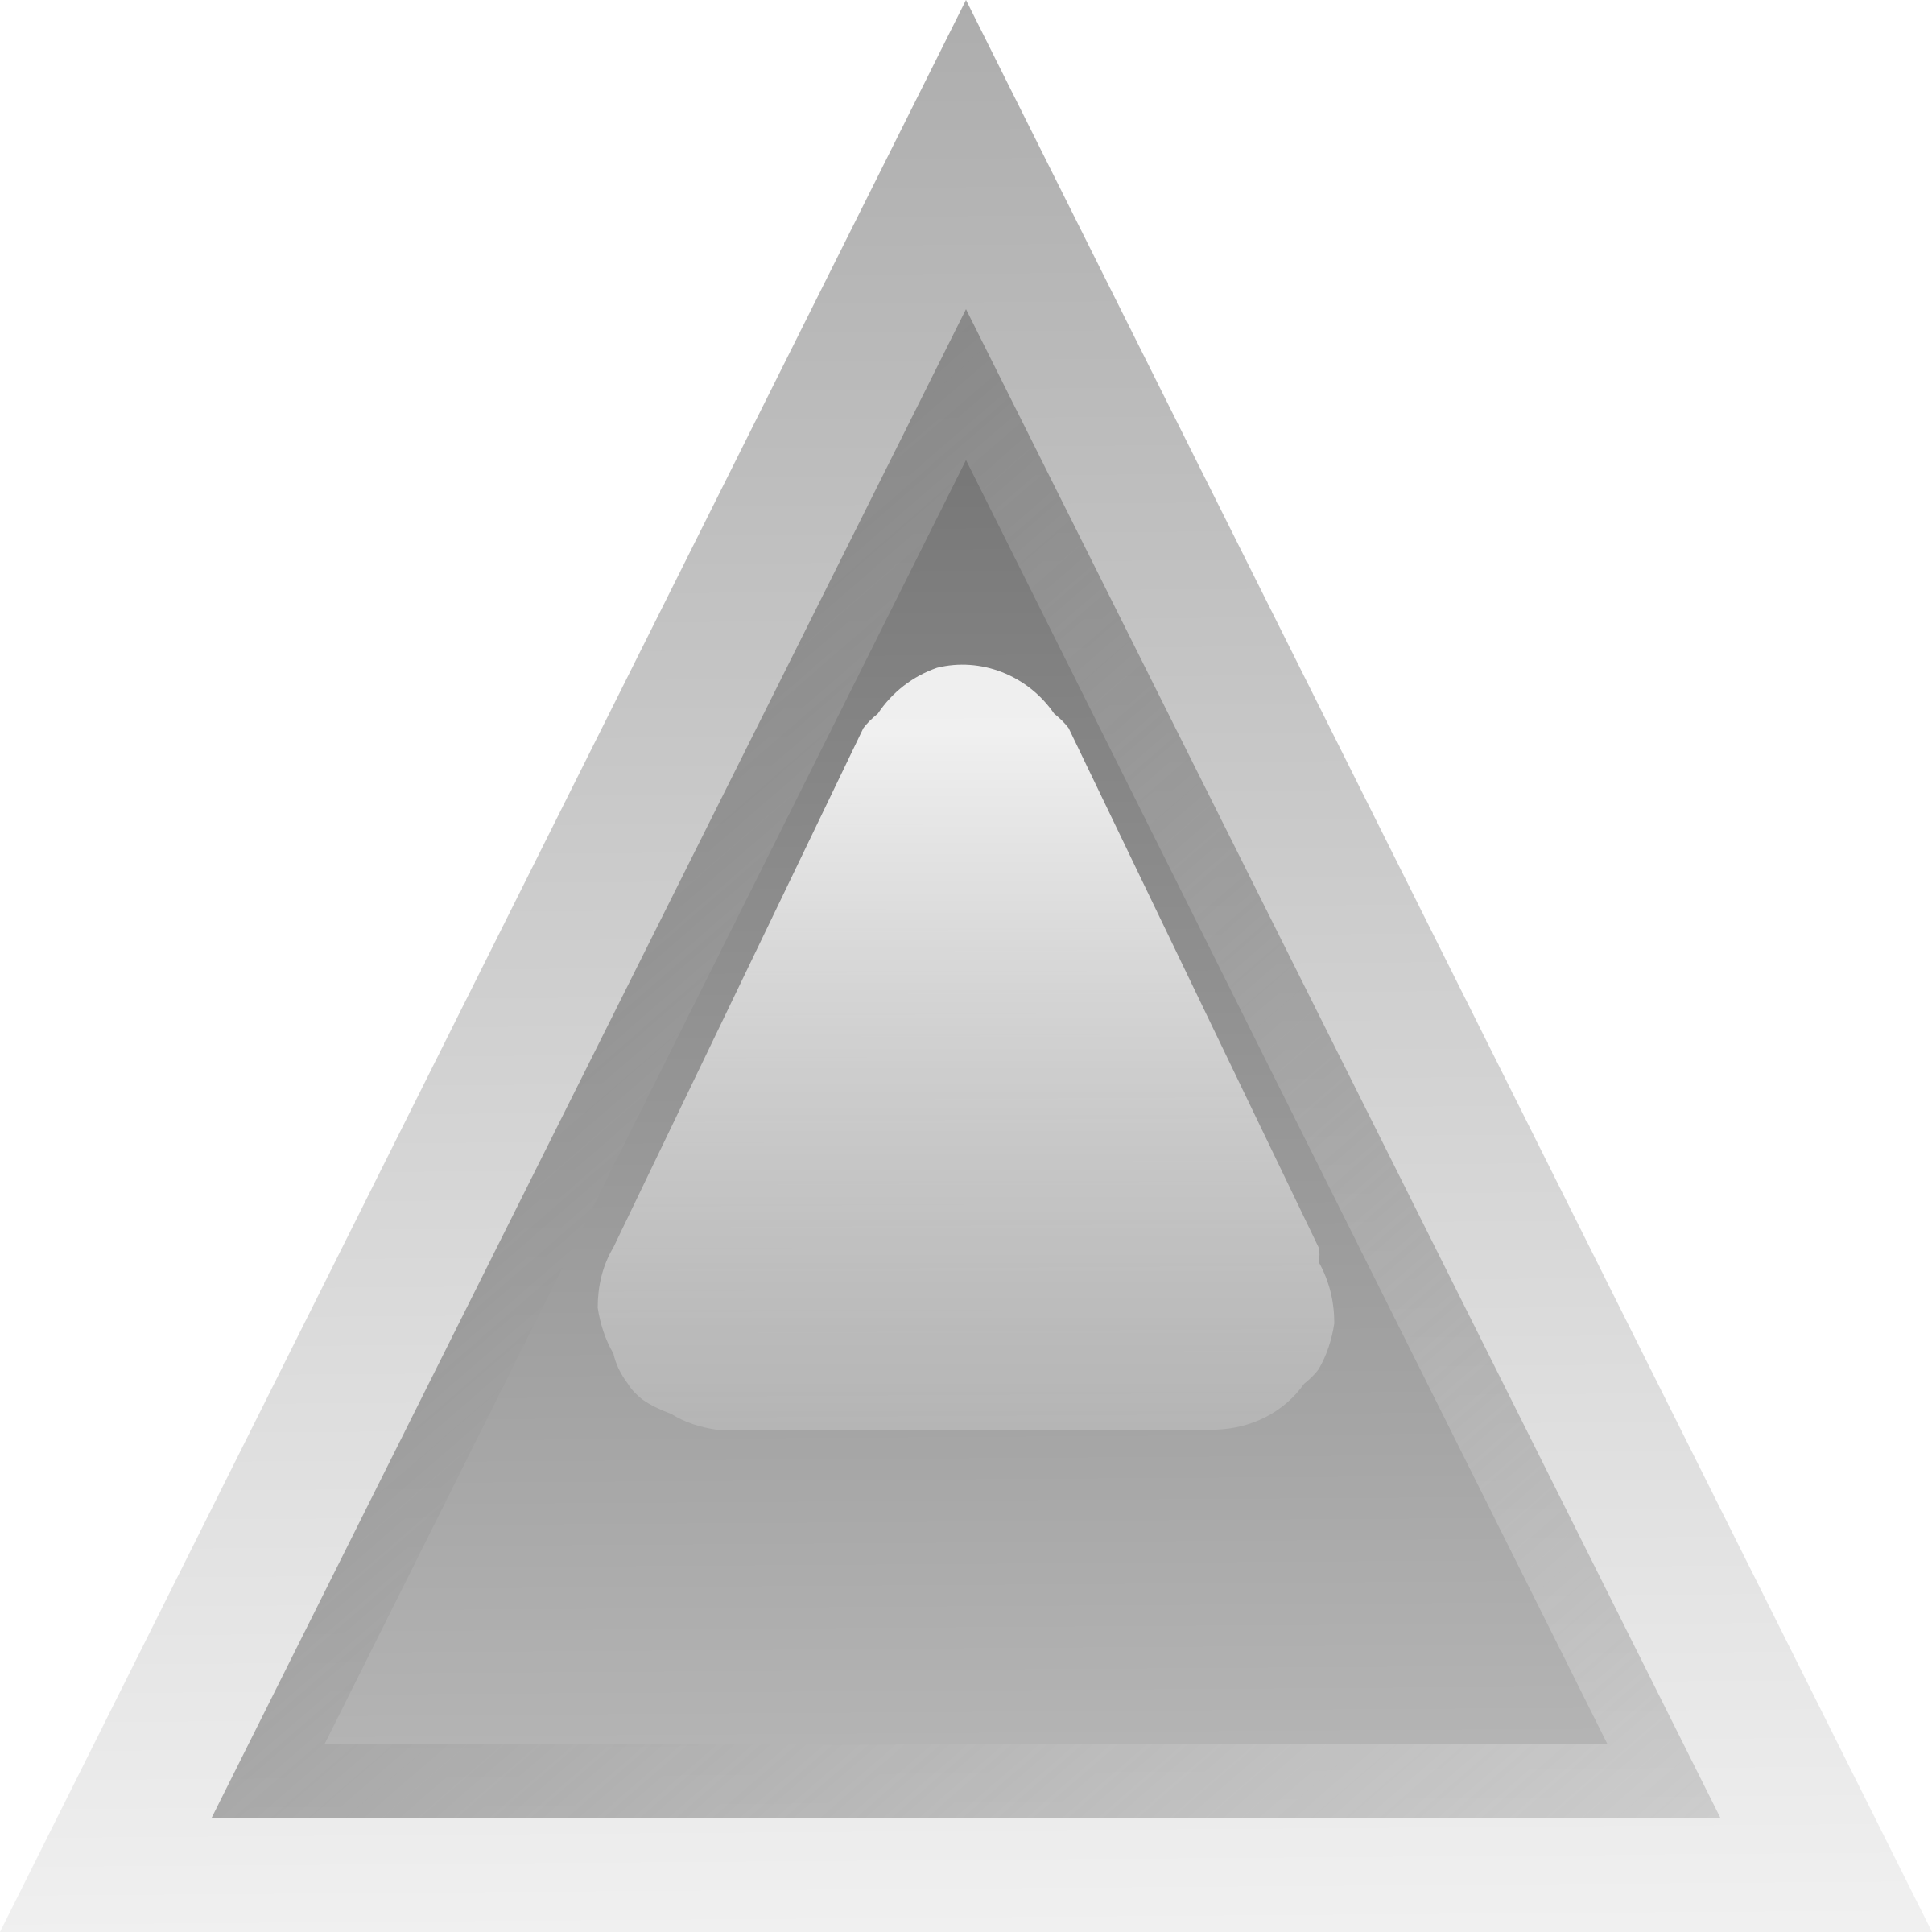 led triangular grey by Anonymous